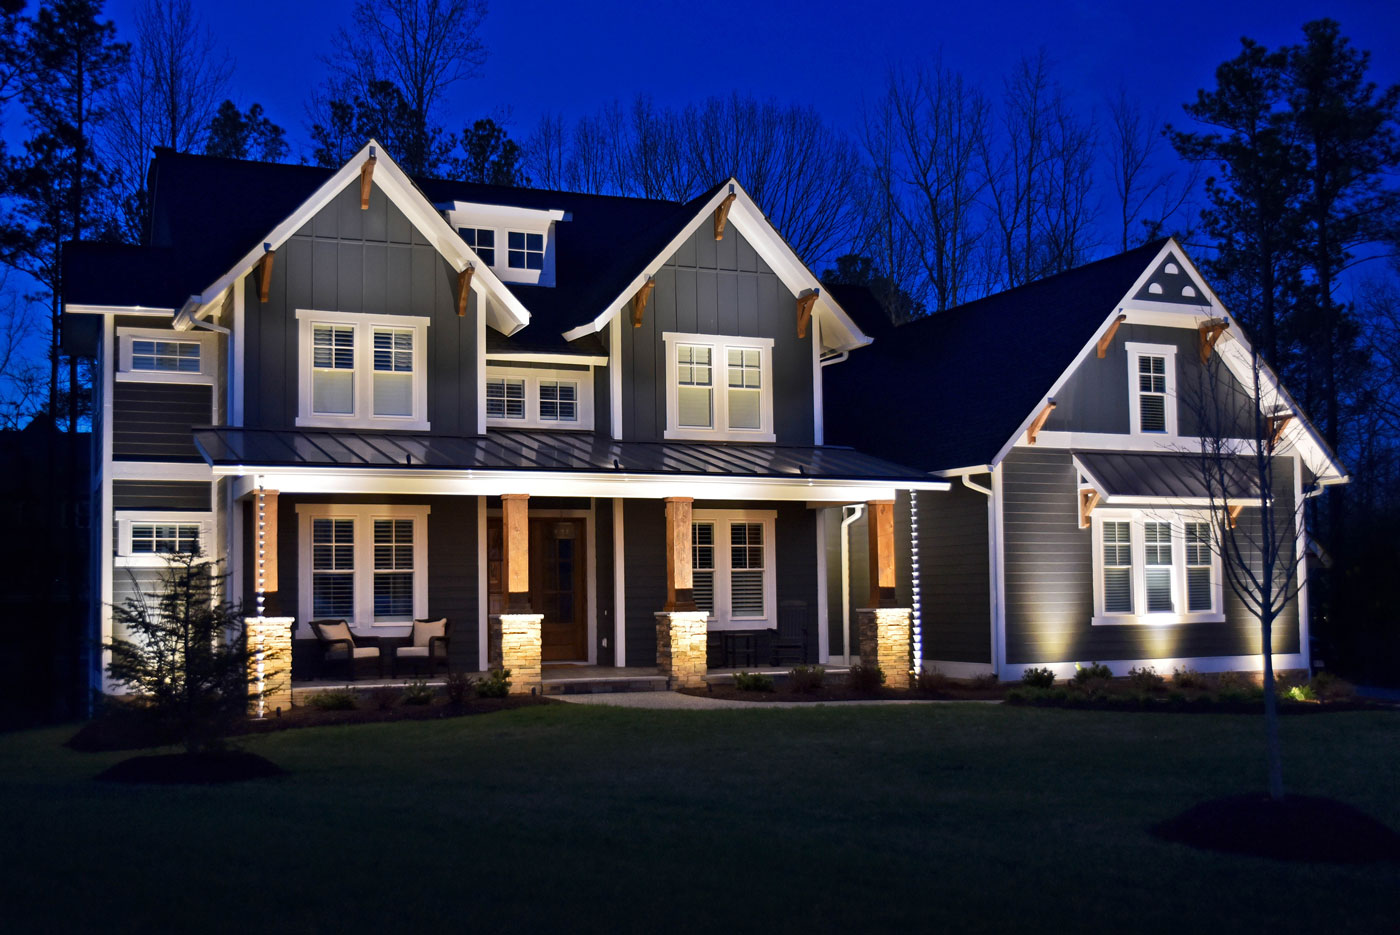 A properly maintained home serviced by Outdoor Lighting Perspectives.